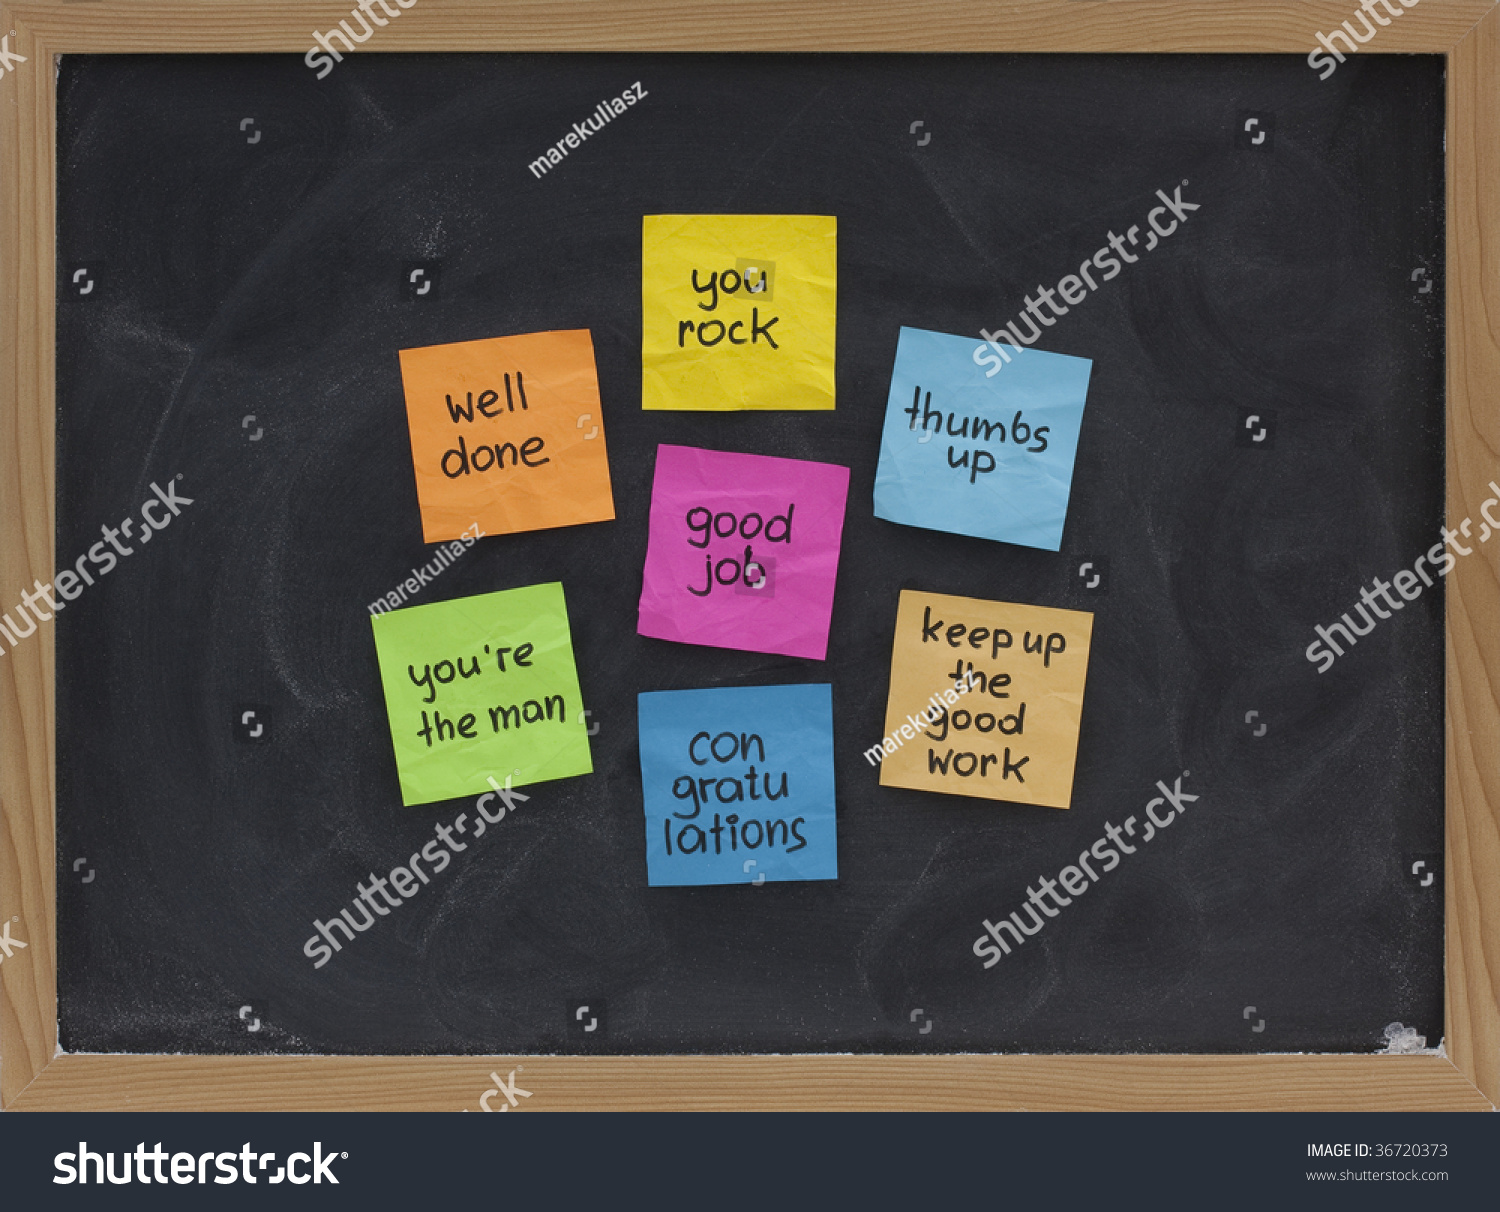 good job well done your rock stock photo shutterstock good job well done your rock congratulations and other compliments colorful sticky